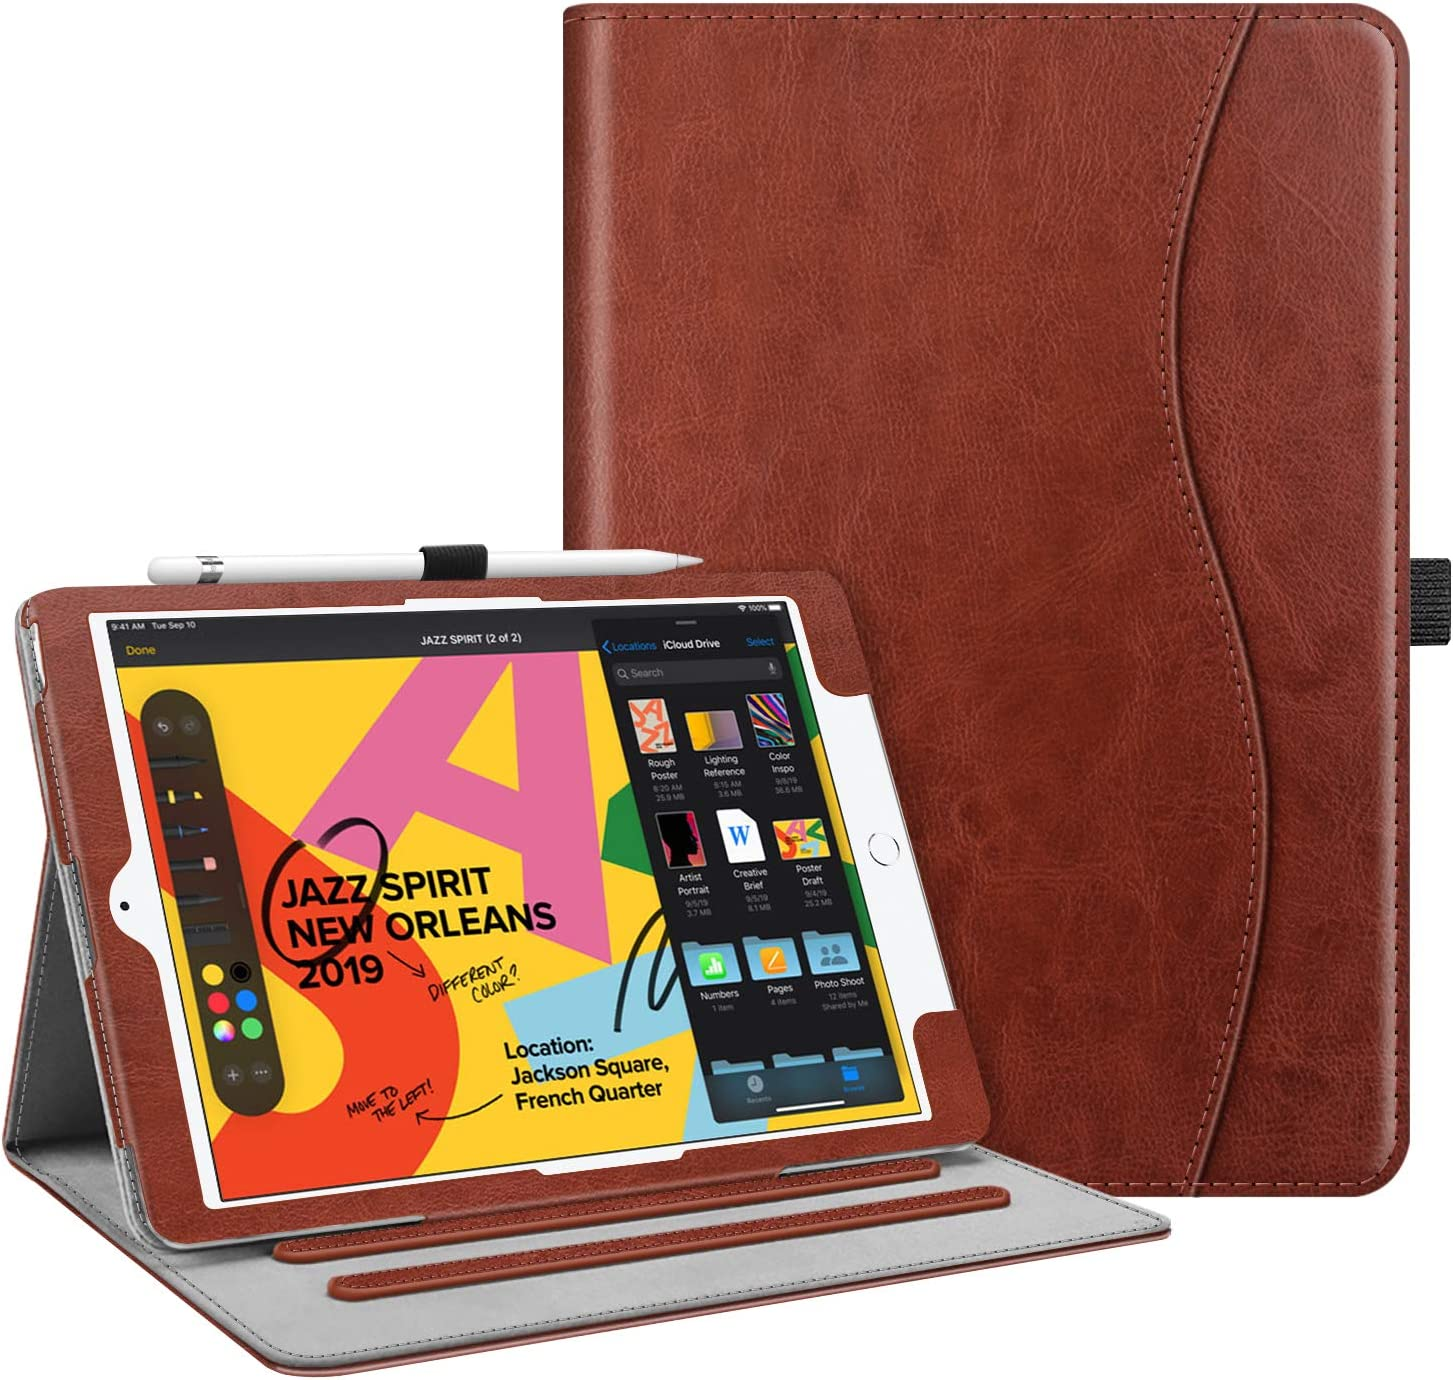 """Fintie Case for New iPad 7th Generation 10.2 Inch 2019 - [Corner Protection] Multi-Angle Viewing Folio Smart Stand Back Cover with Pocket, Pencil Holder, Auto Wake/Sleep for iPad 10.2"""", Vintage Brown"""